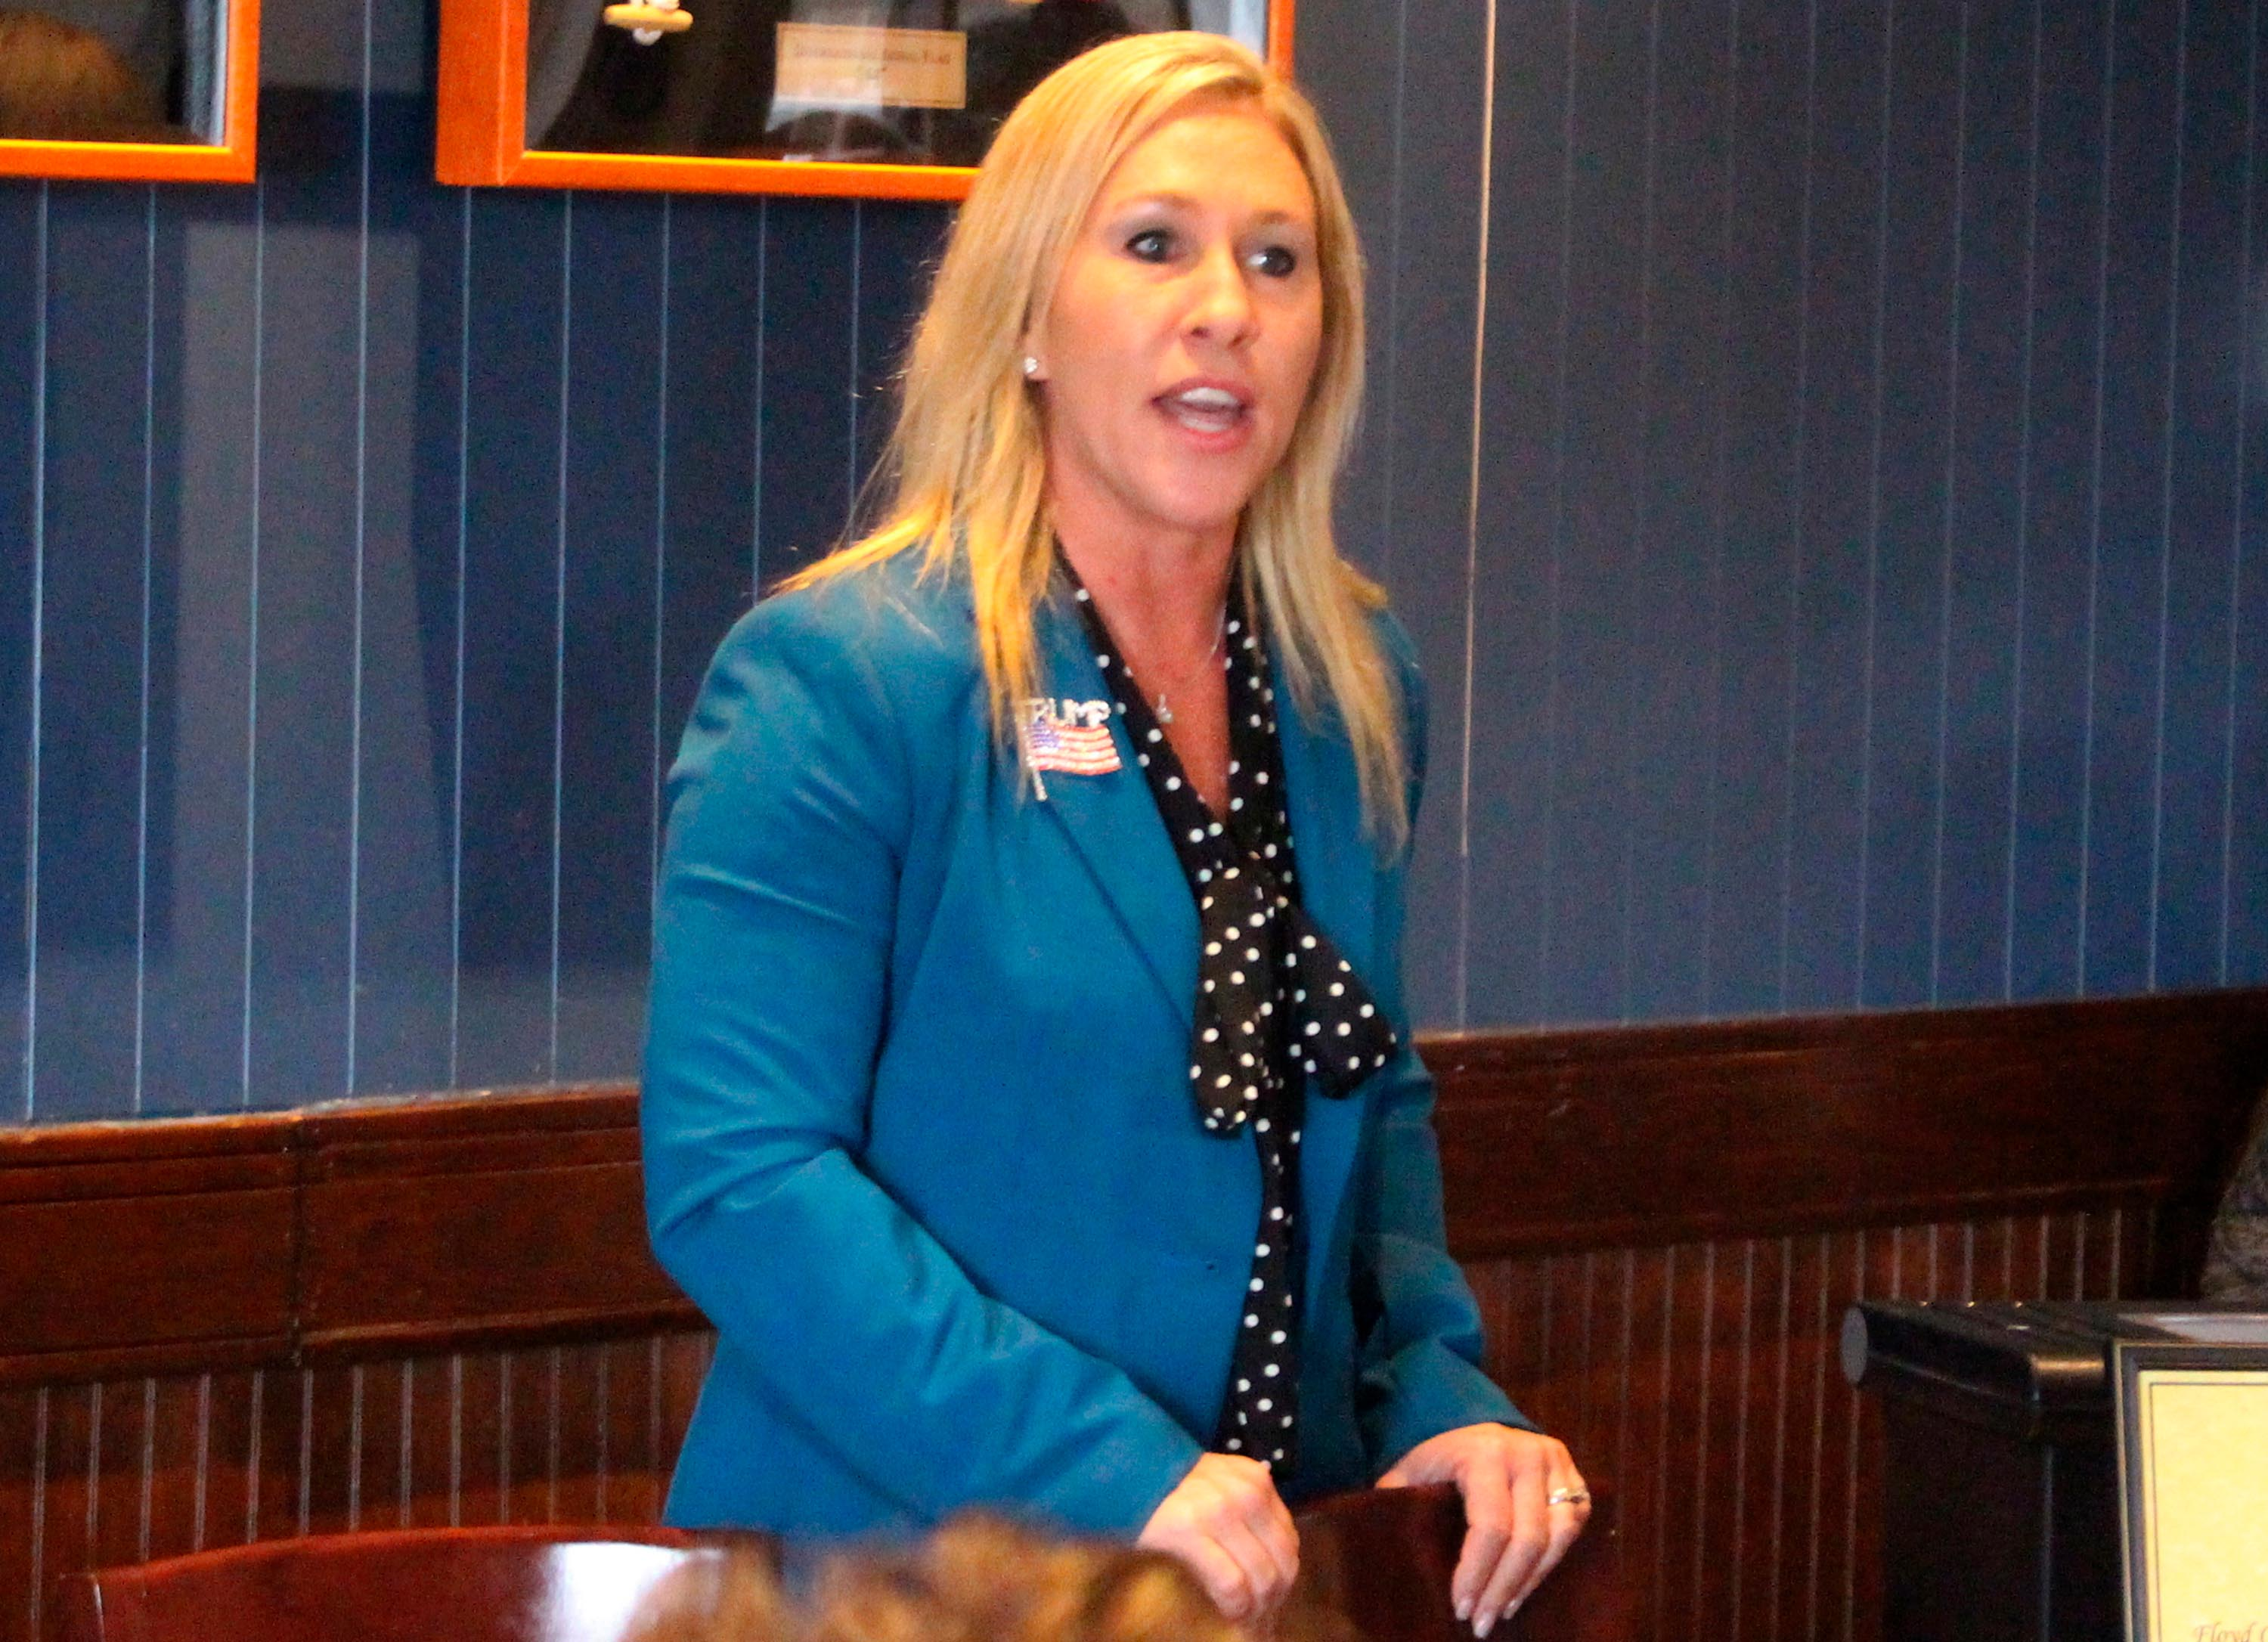 GOP candidate Marjorie Taylor Greene spread conspiracies about Charlottesville and 'Pizzagate'